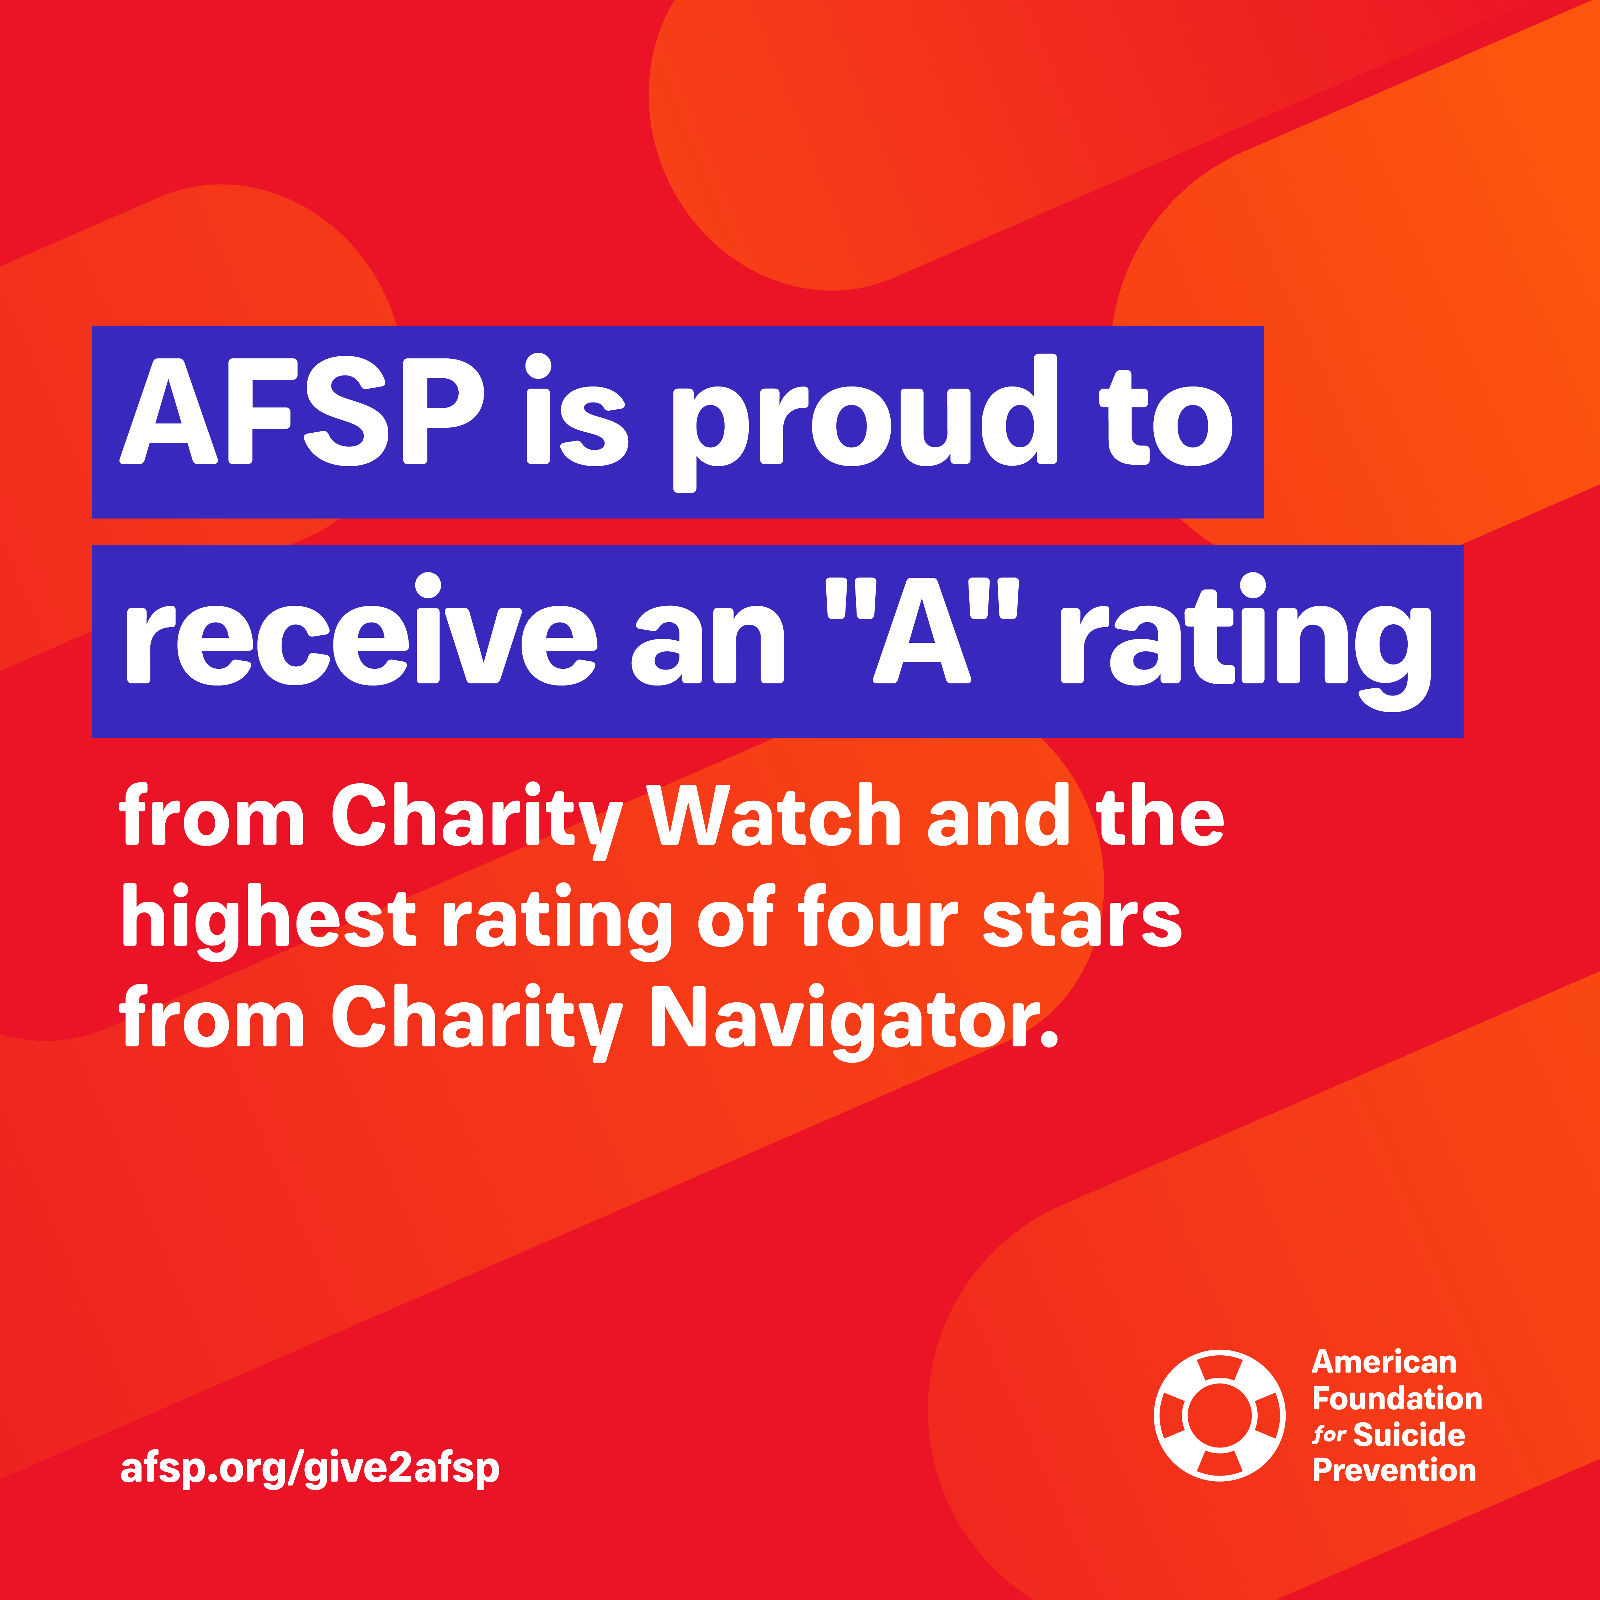 "AFSP is proud to receive an ""A"" rating from Charity Watch and the highest rating of four stars from Charity Navigator."